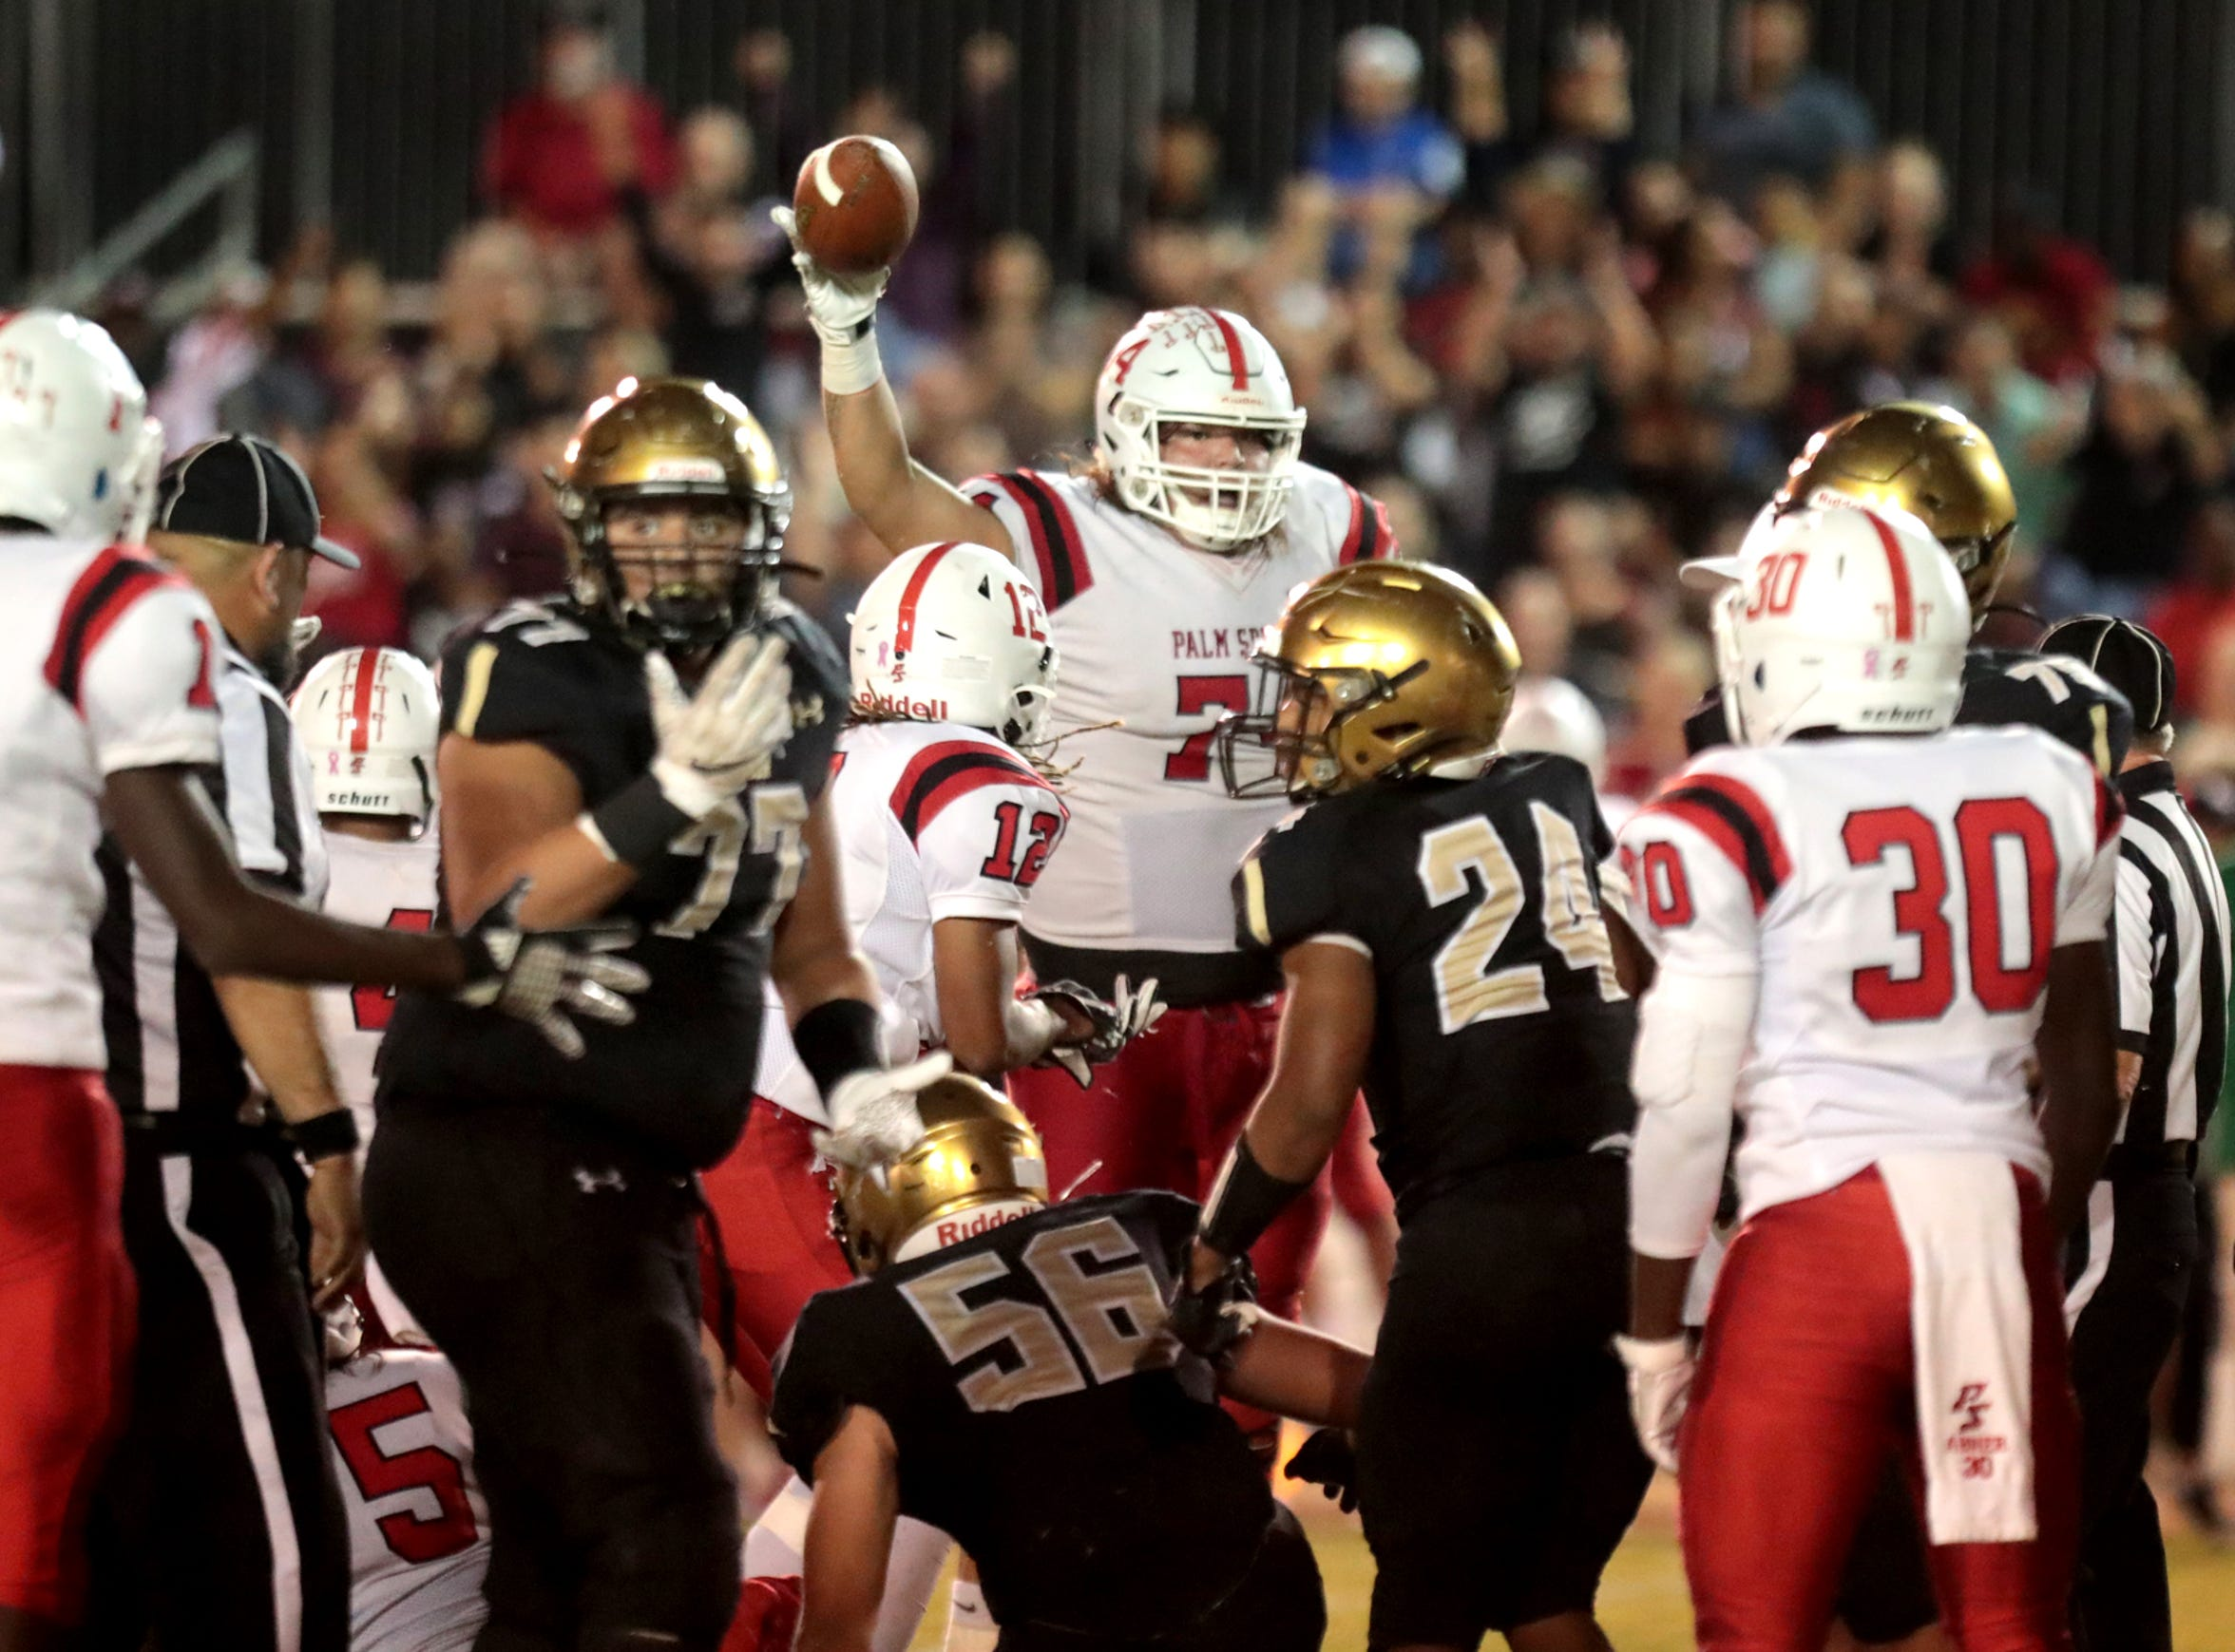 Palm Springs' Julian Polendo (74) will decide this month where he will play college football.